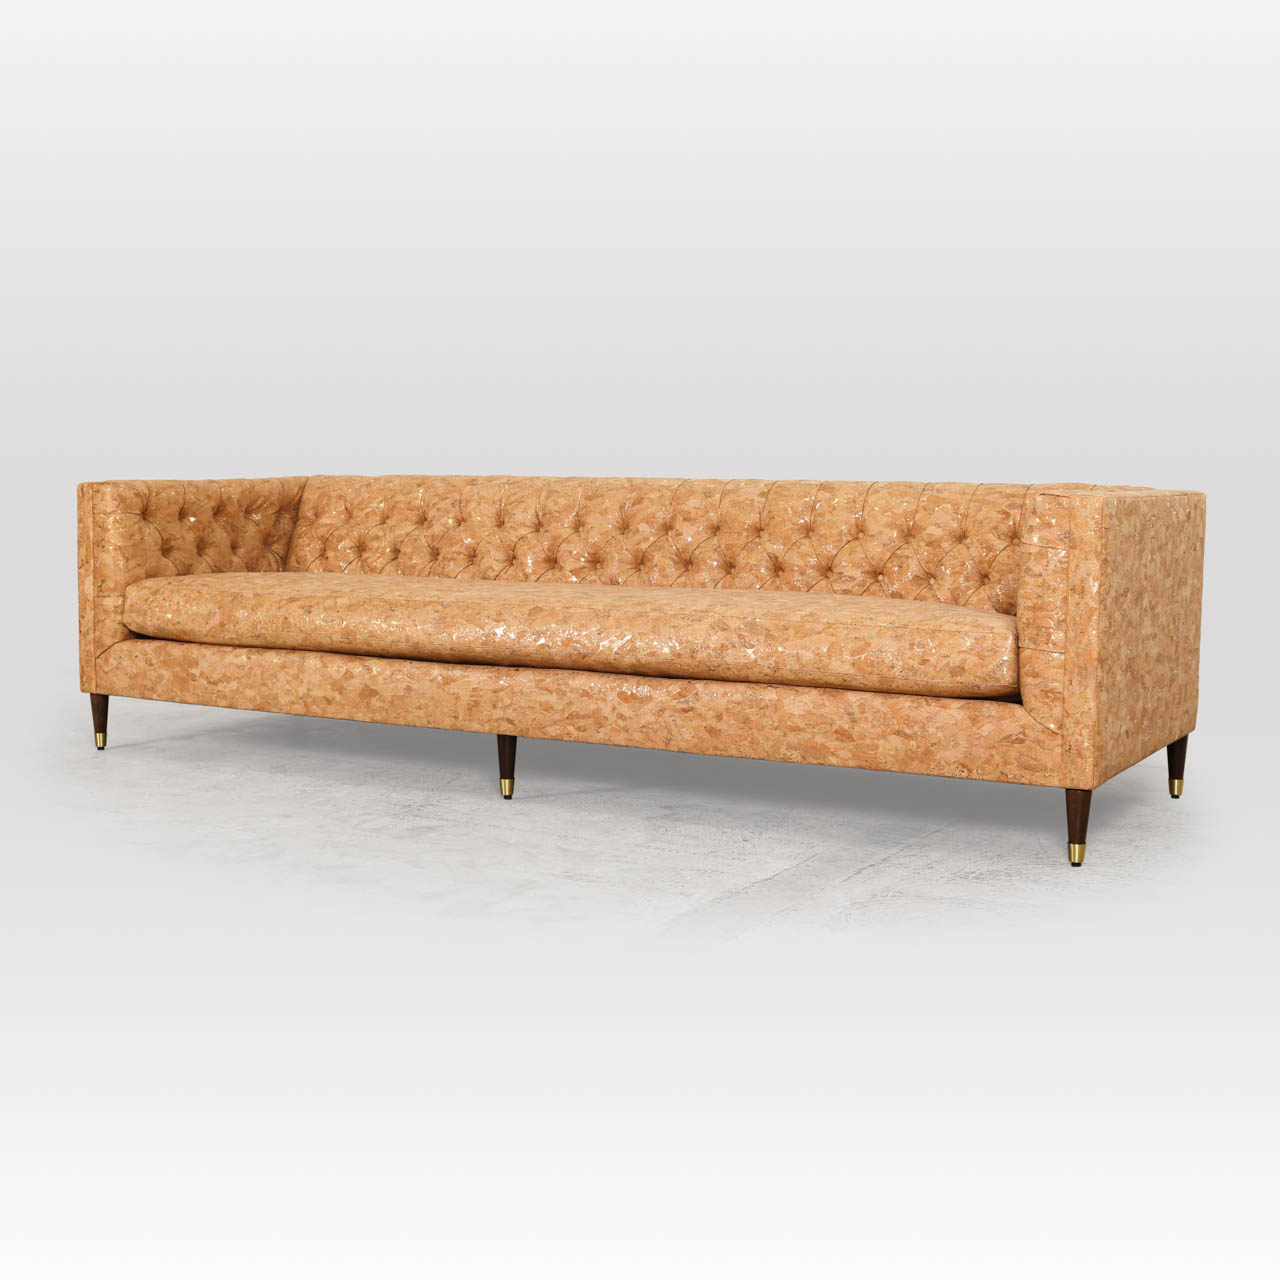 Belmont Fabric Sofa 114 x 38 Gold Flecked Cork by COCOCO Home